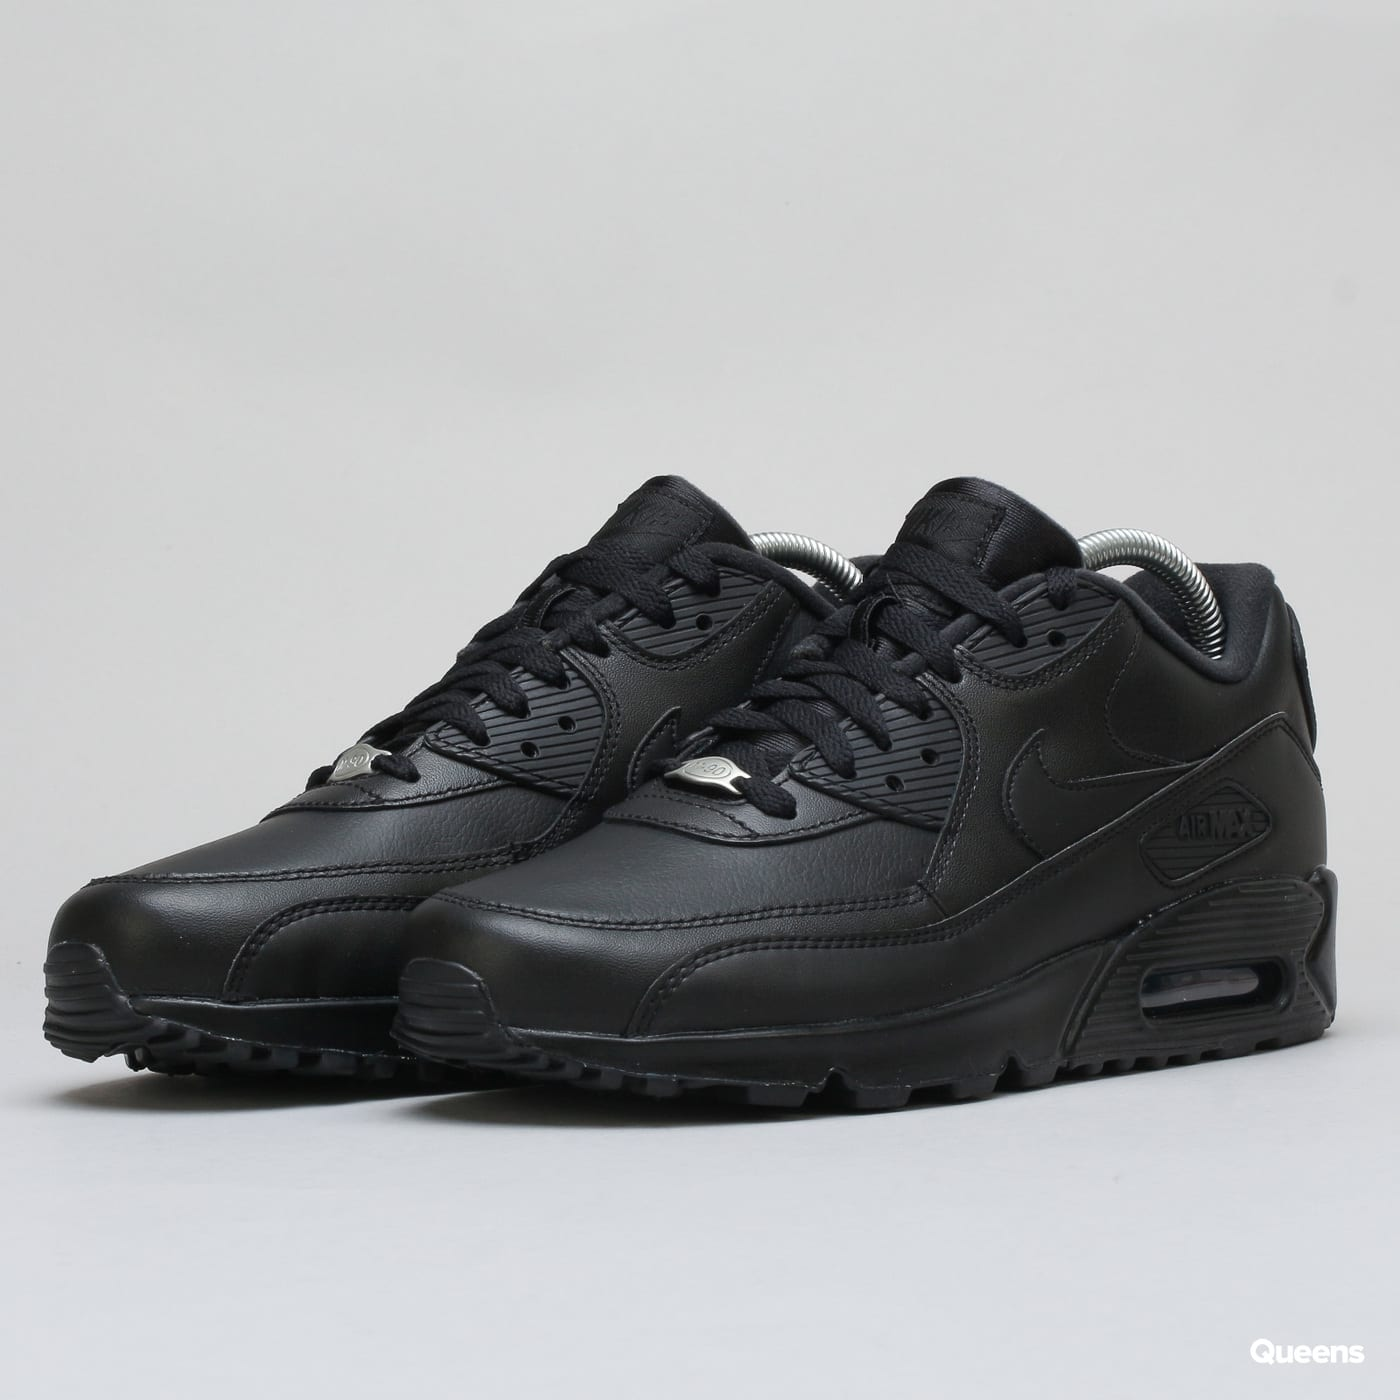 Boty Nike Air Max 90 Leather (302519-001) – Queens 💚 974a79d642